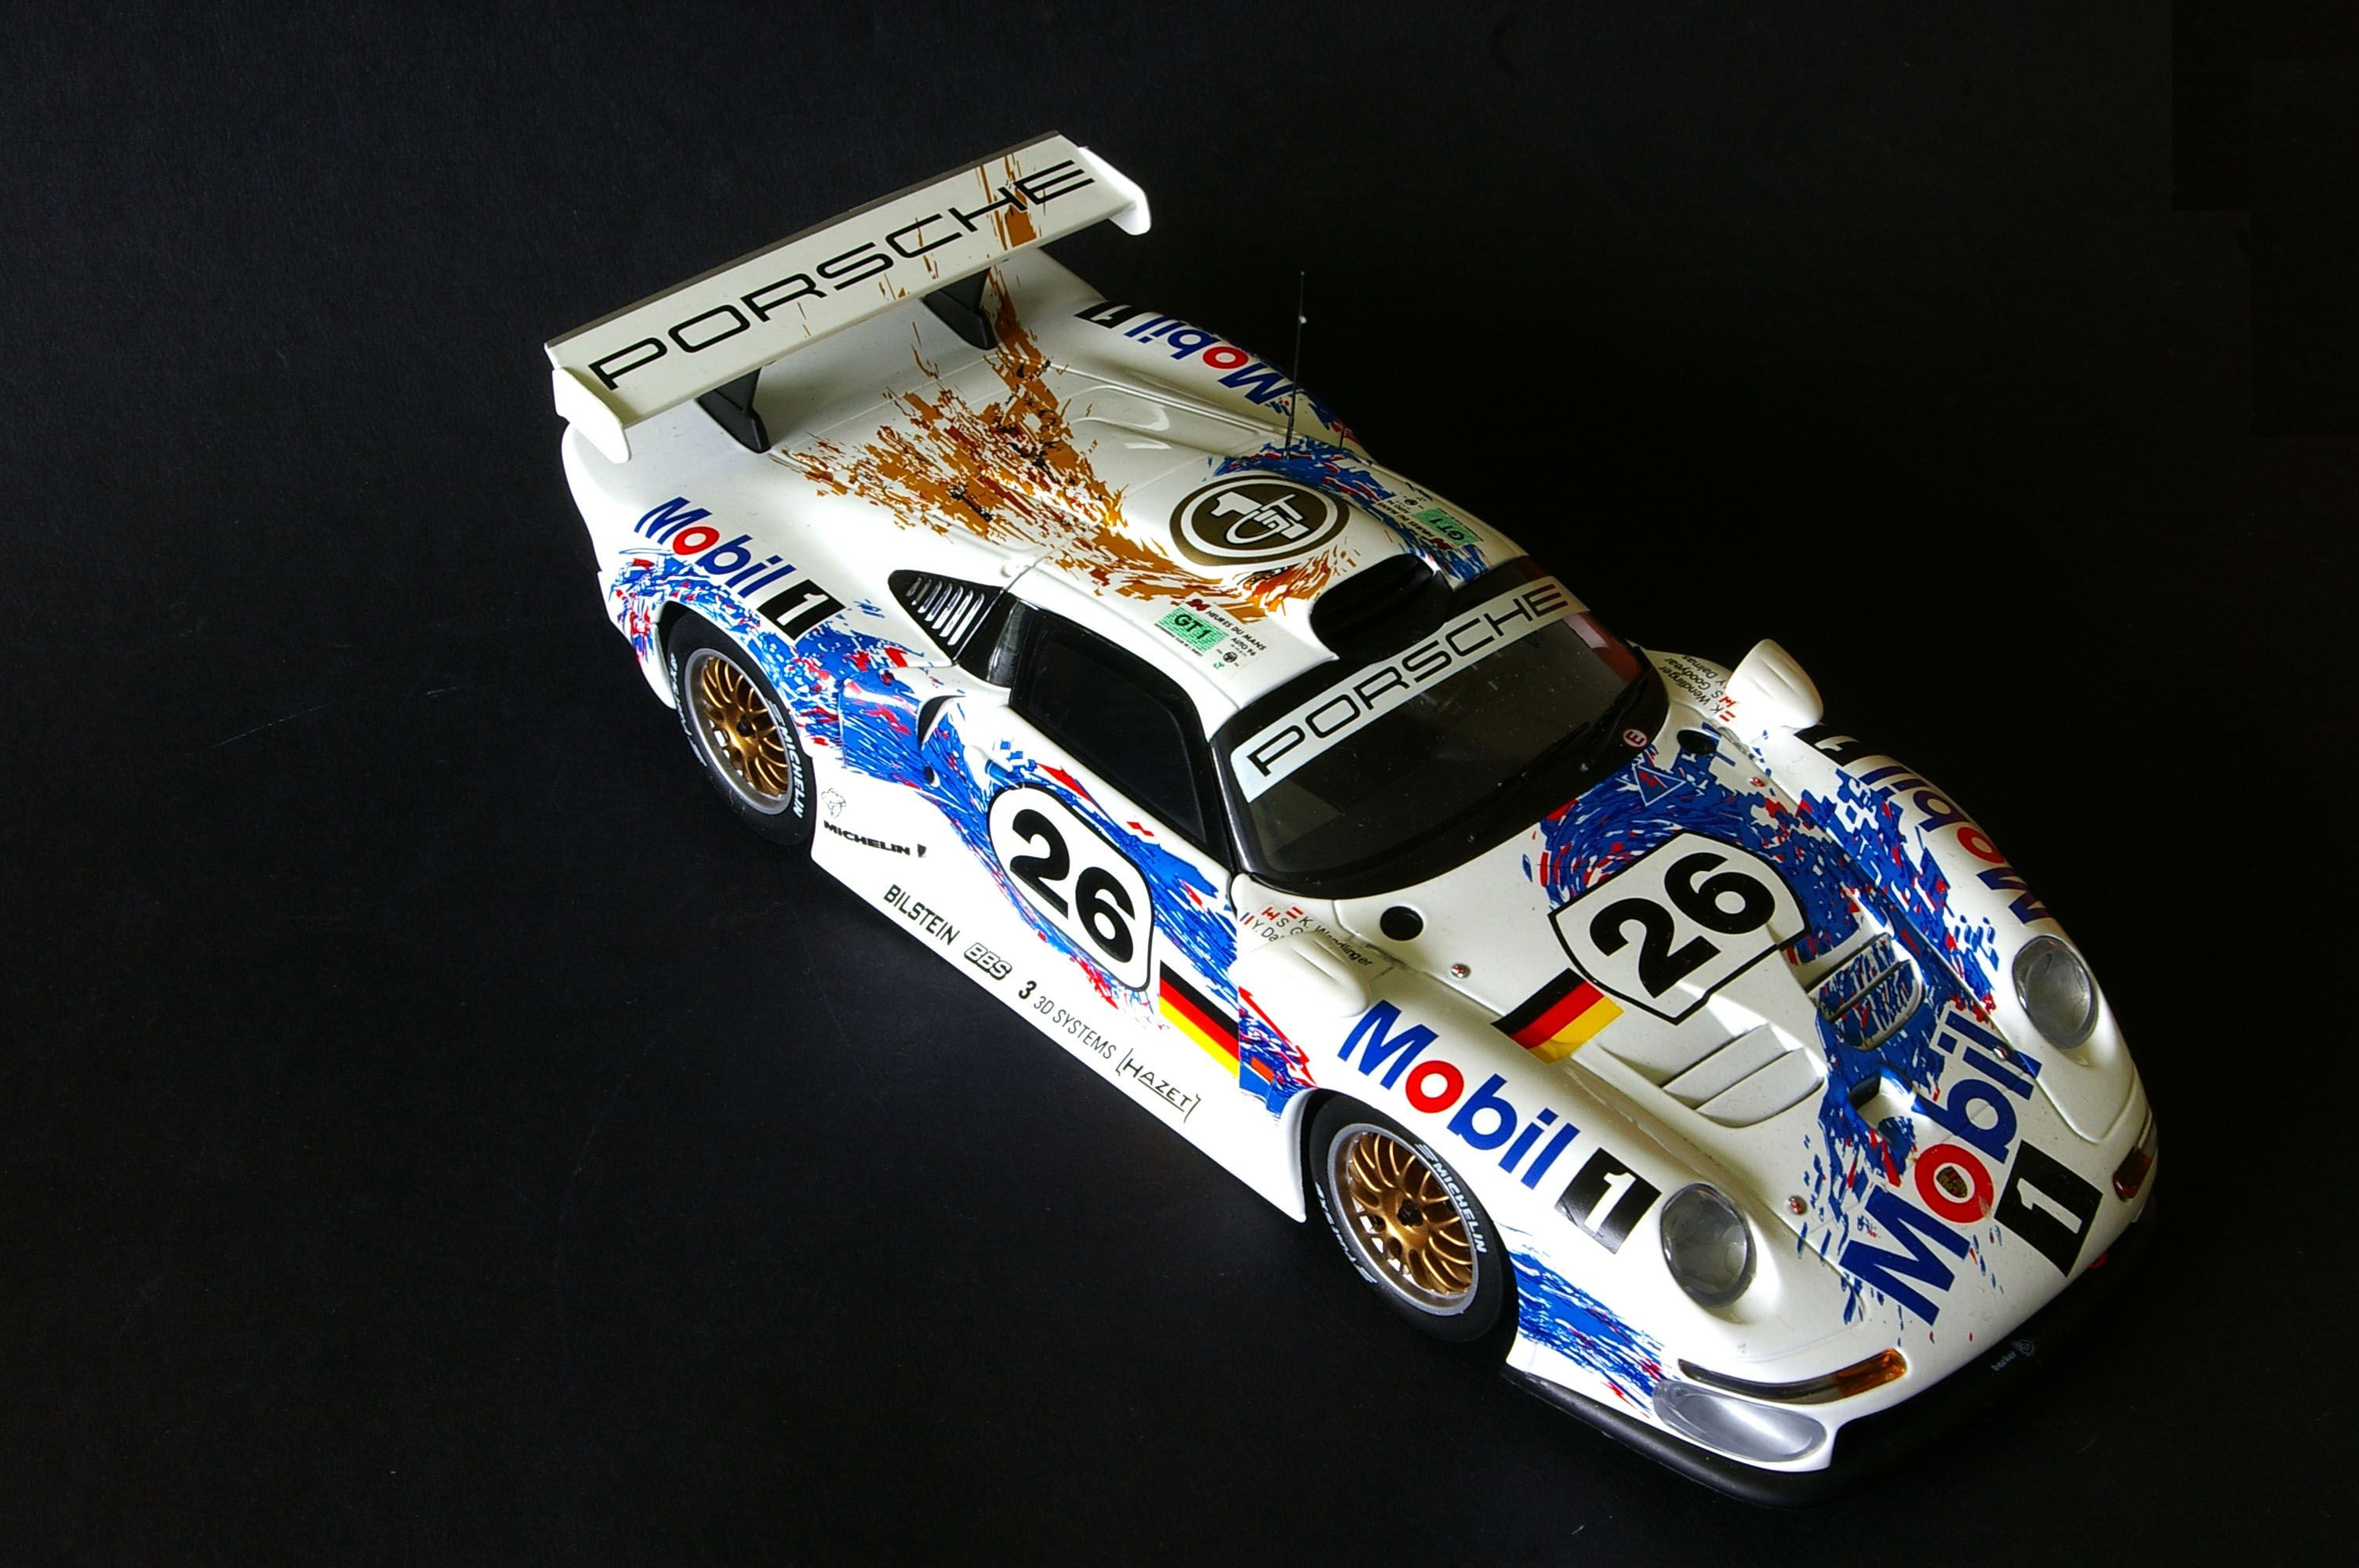 imgp3175y Exciting Anson Racing Porsche 911 Gt1 Cars Trend